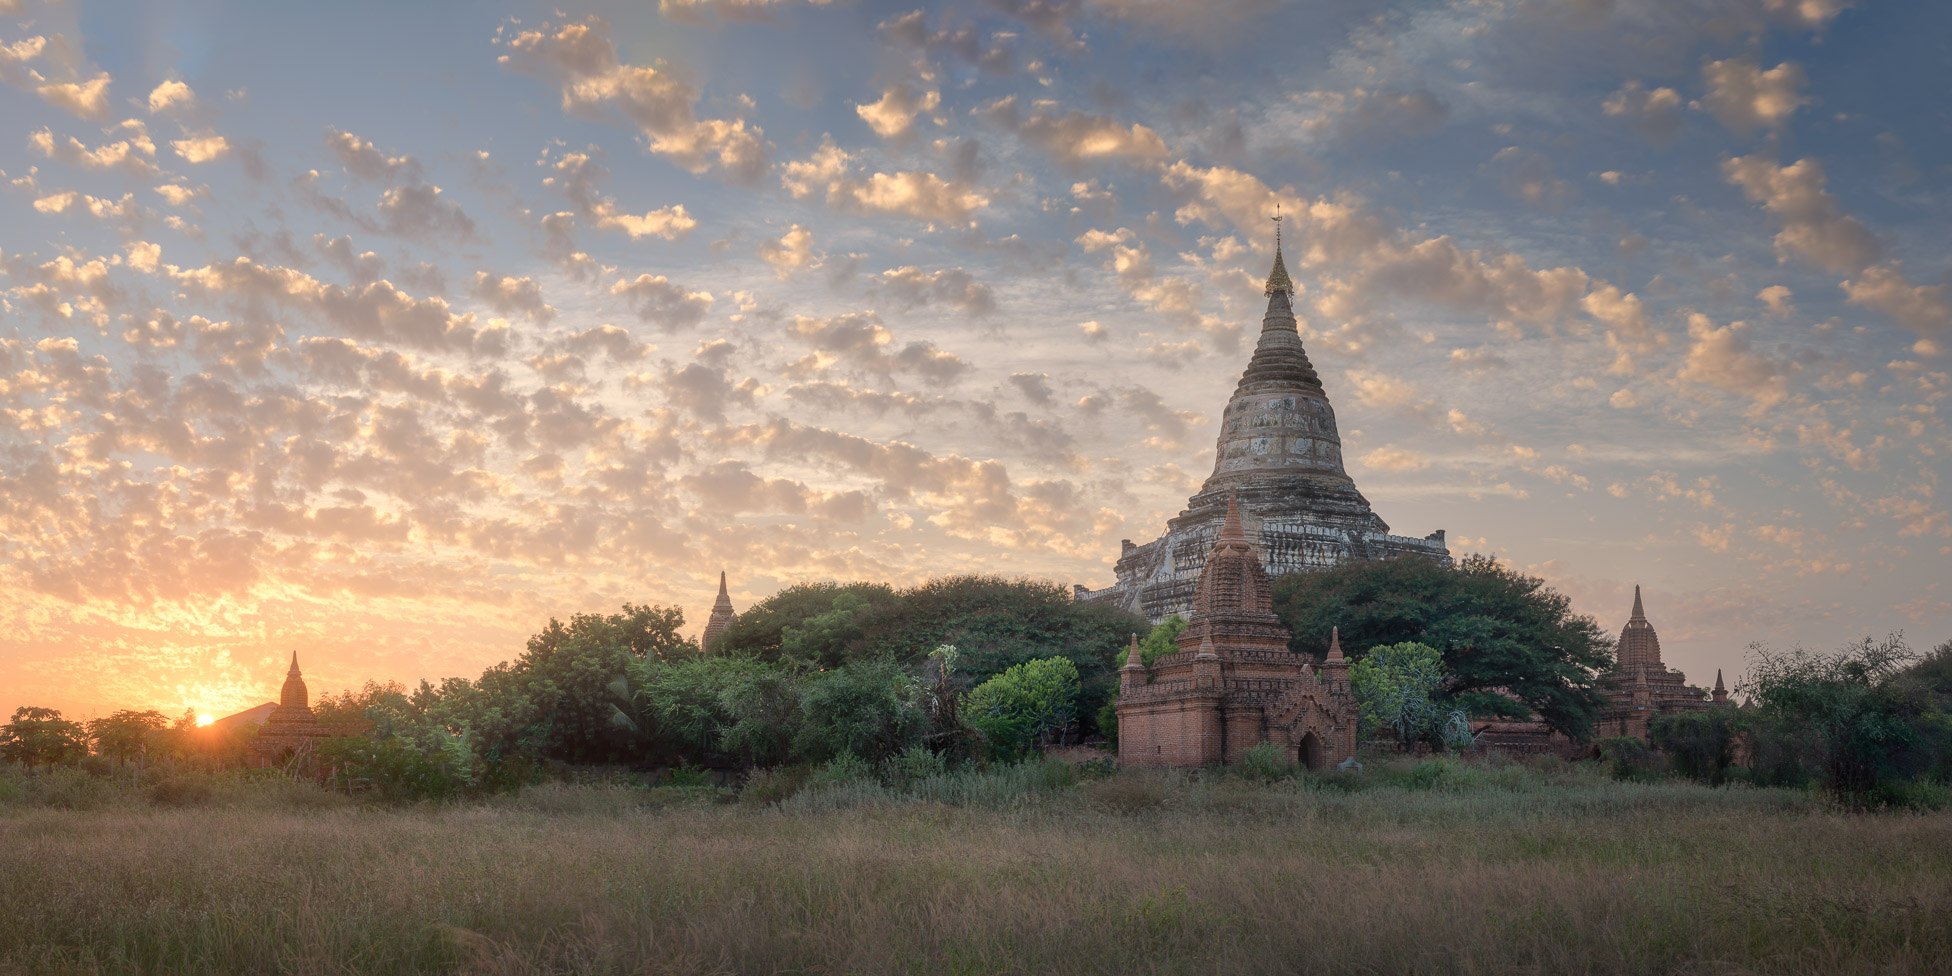 Panorama of Shwesandaw Pagoda at Sunset, Bagan, Myanmar